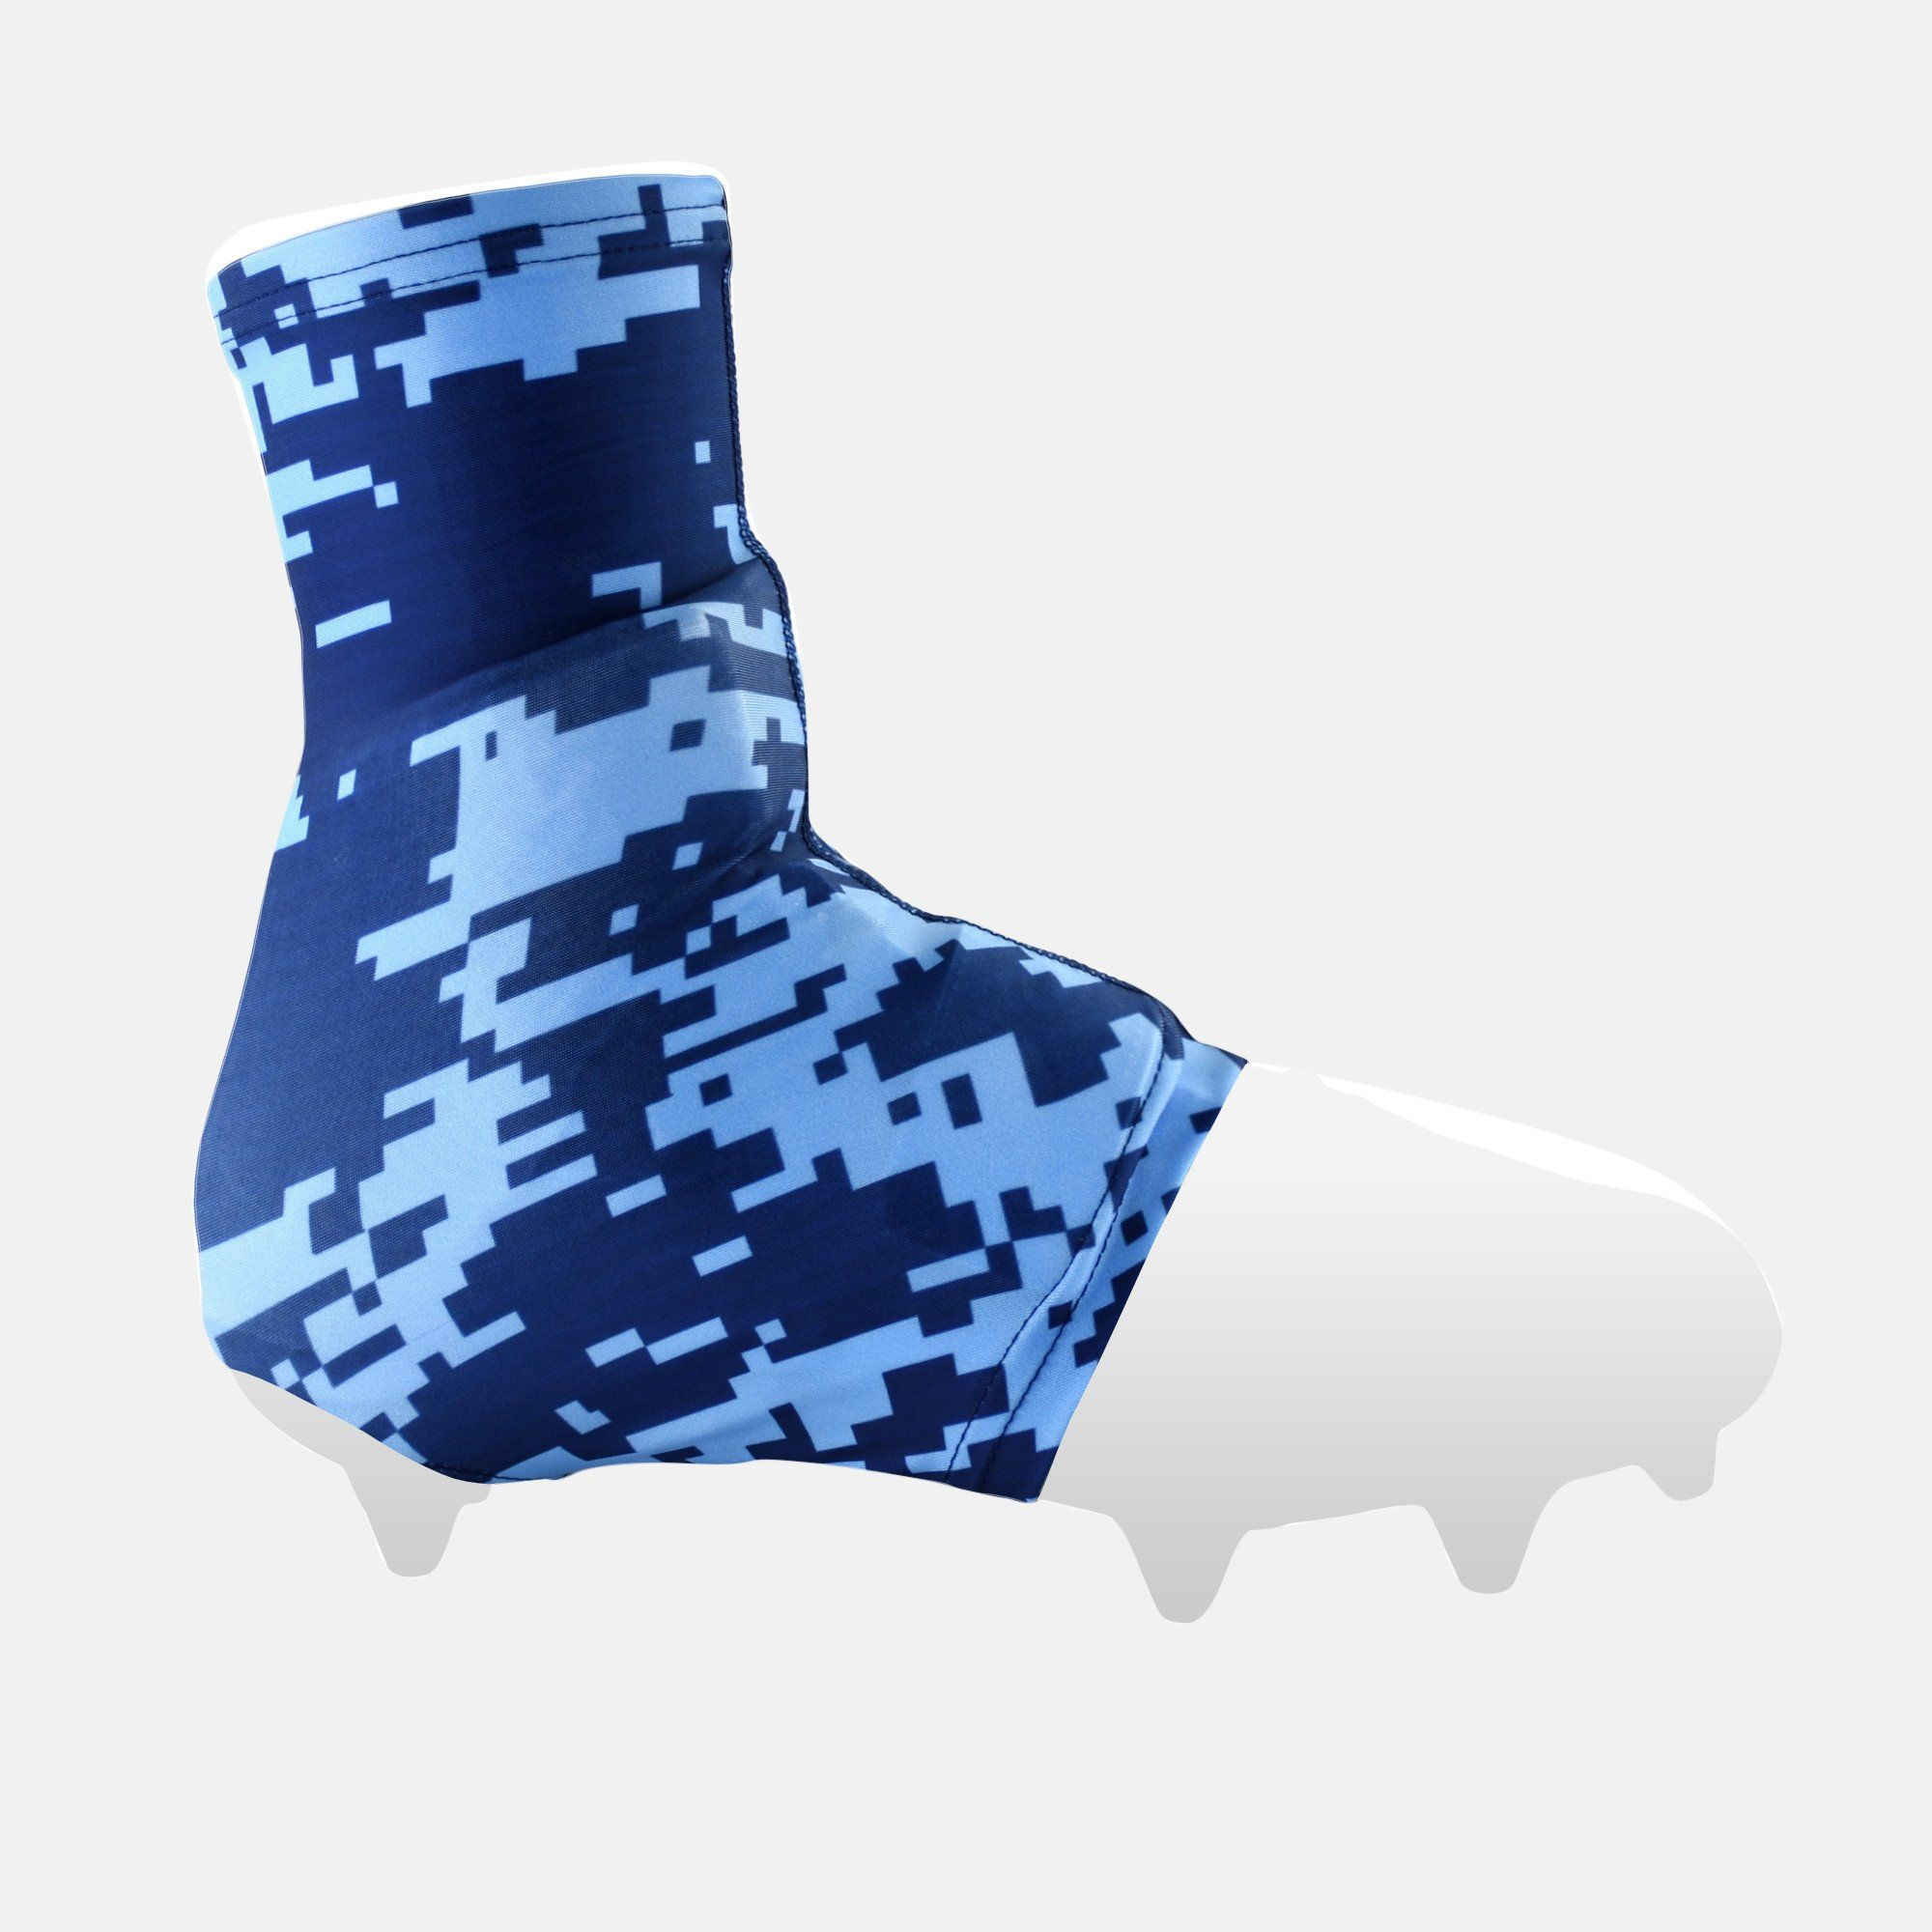 Digital Camo Navy Blue Spats / Cleat Covers | Cleats, Digital camo ...